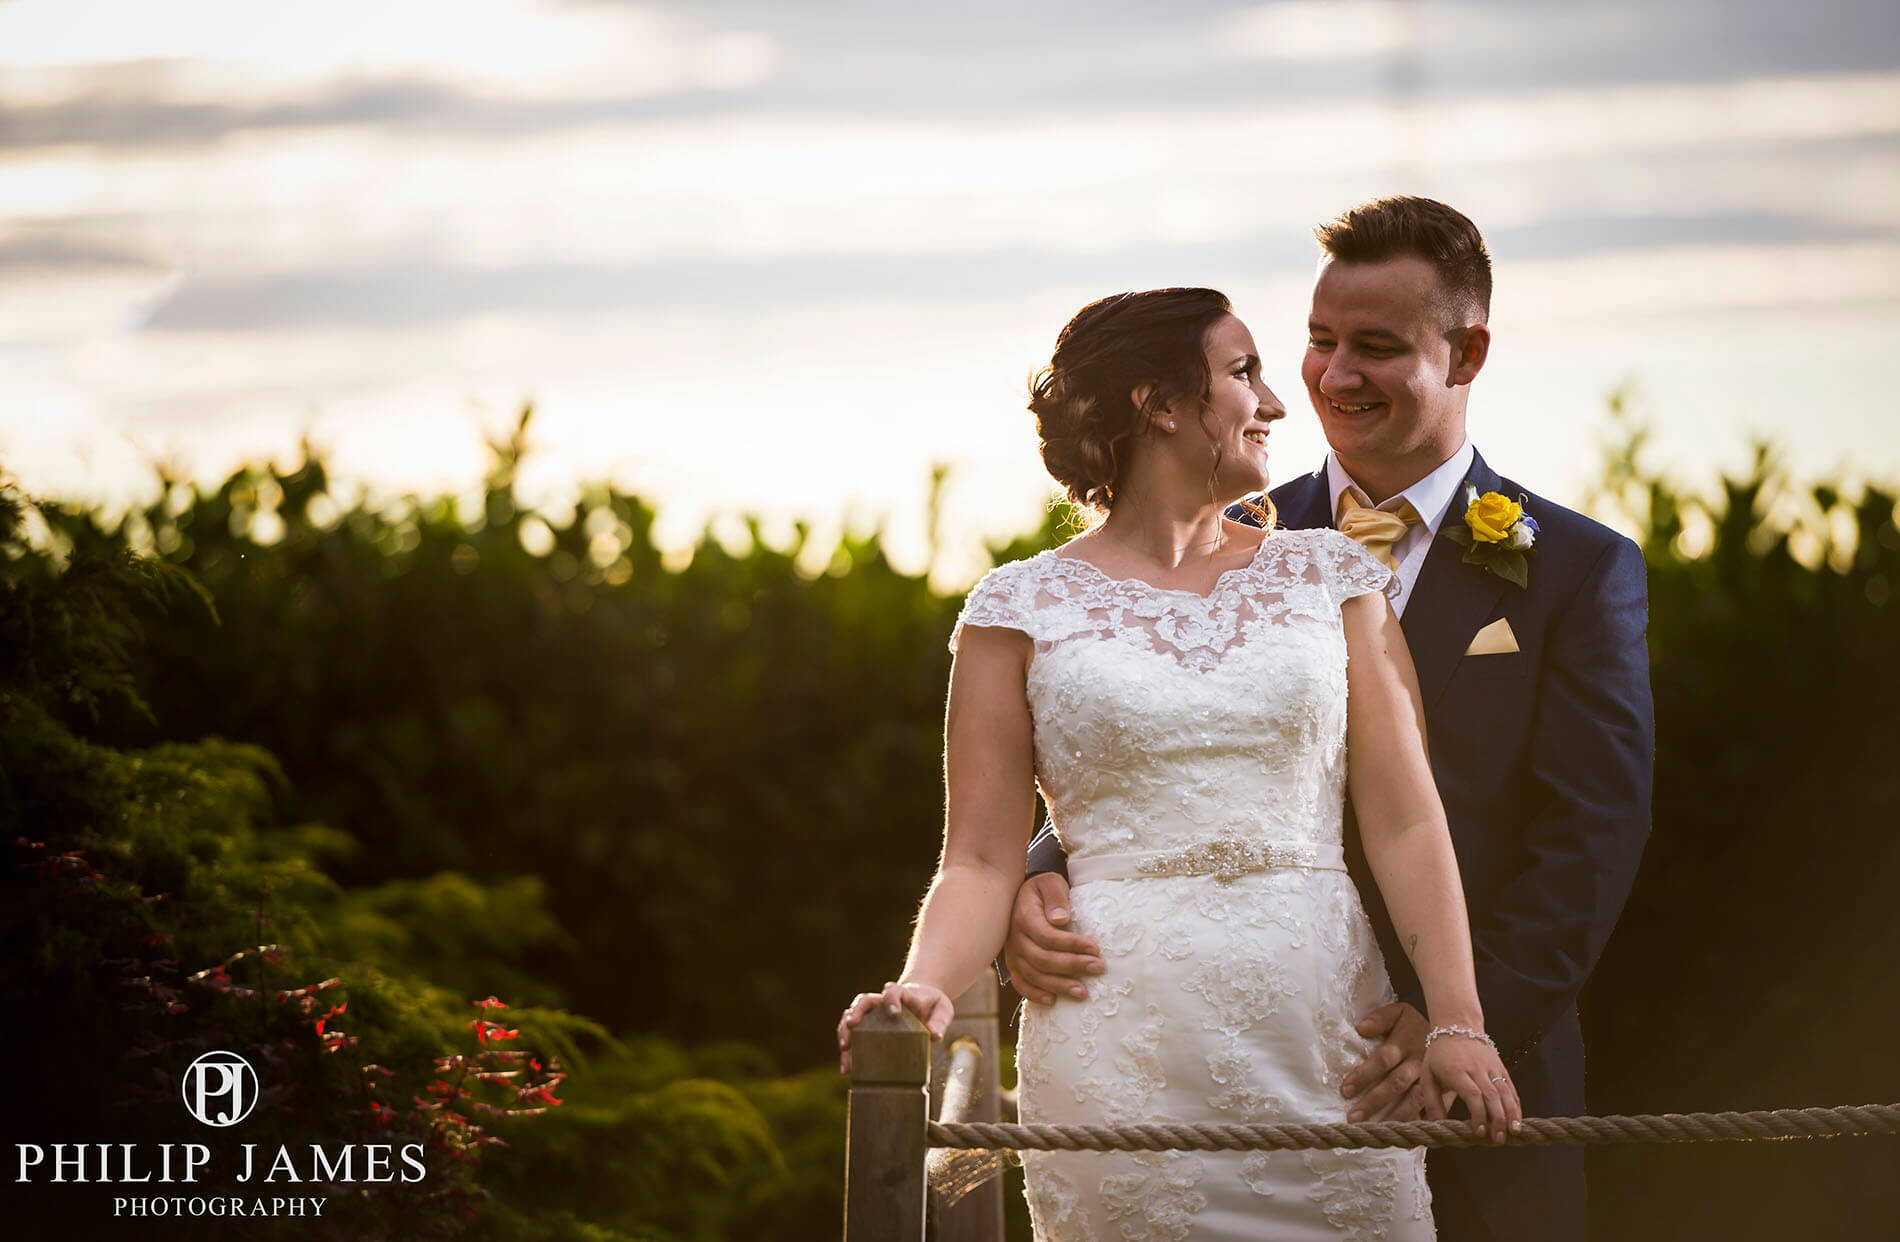 Birmingham Wedding Photographer - Philip James Photography based in Solihull (33 of 68)